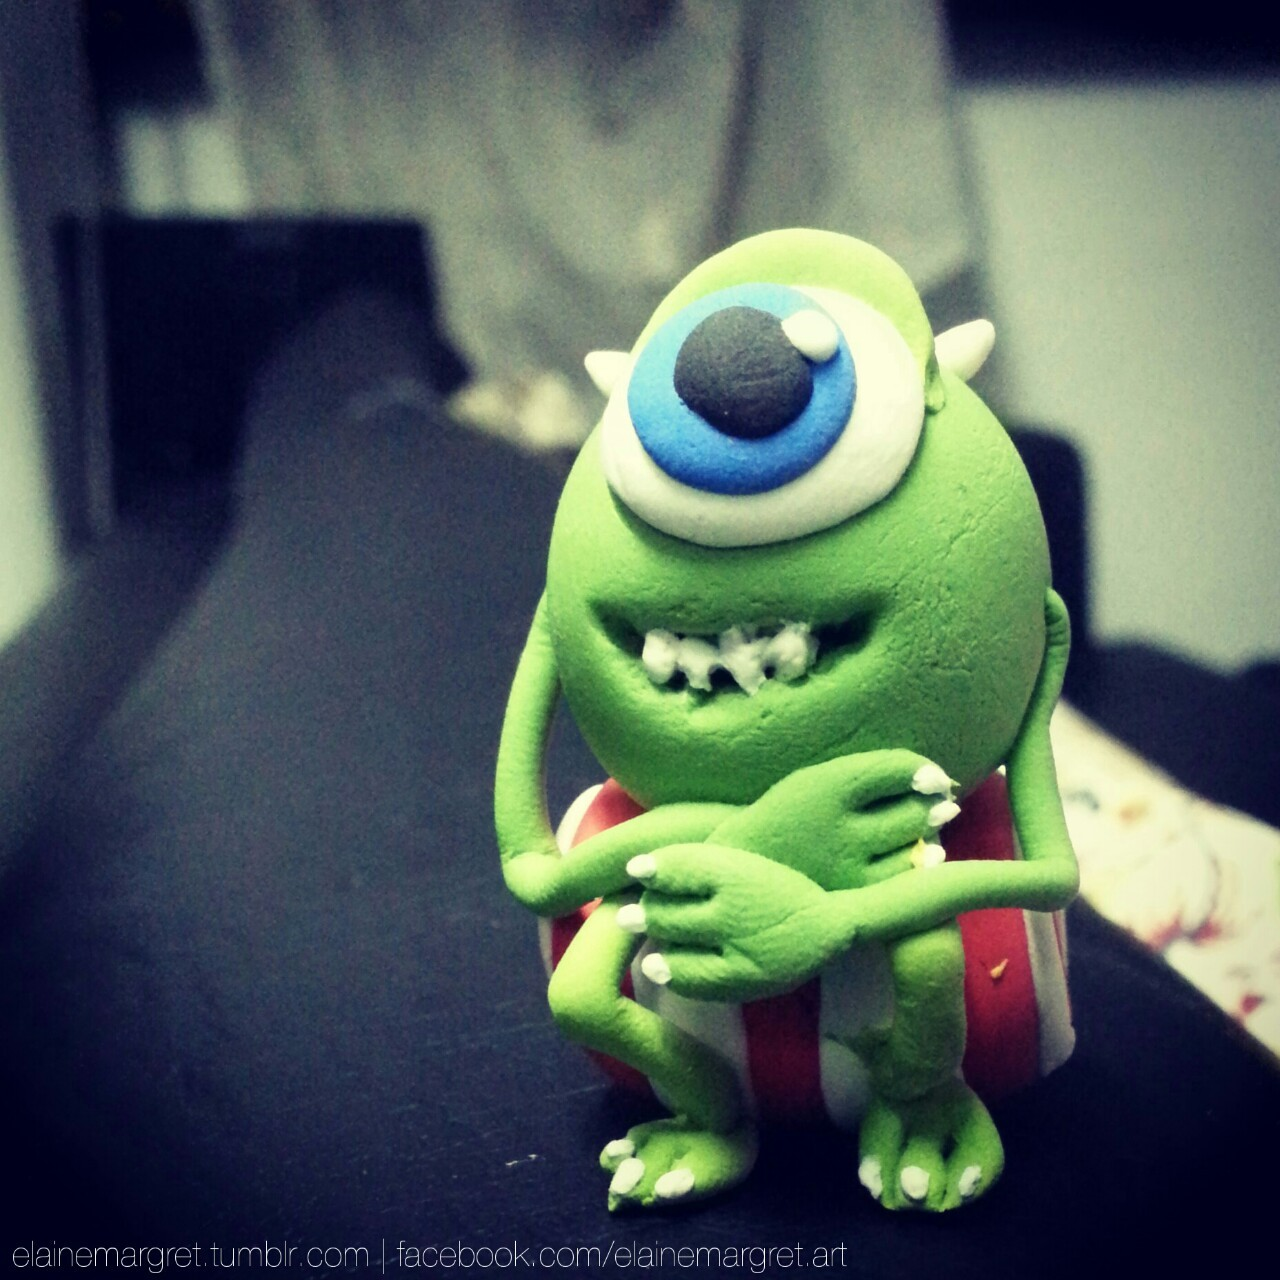 And here's Mike Wazowski from Monsters Inc.! …with messed up teeth. ¯\_(ツ)_/¯ I tried!